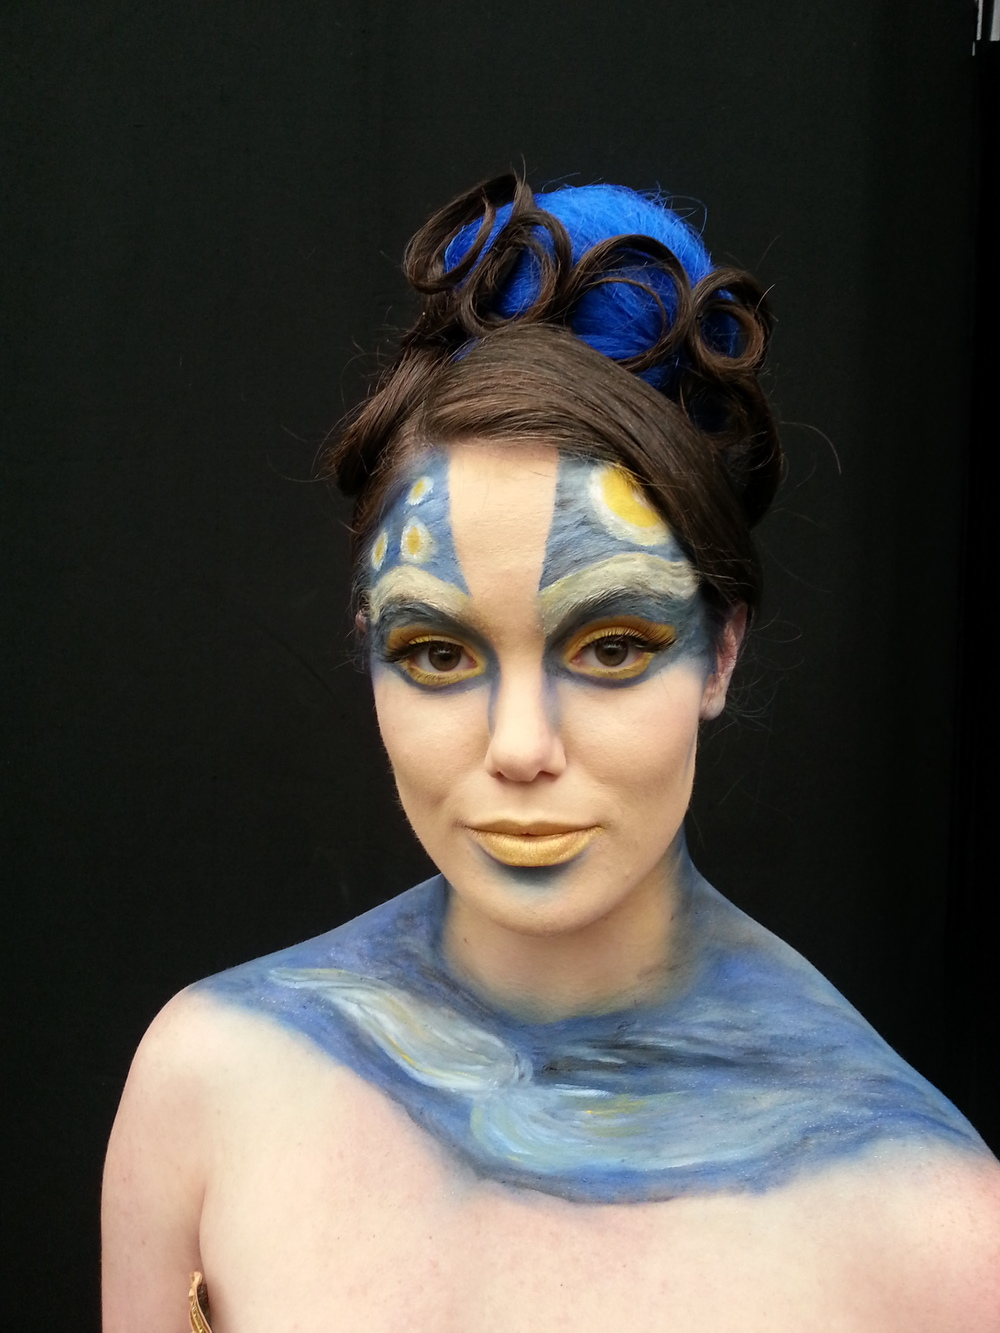 IMATS Vancouver 2014 Battle of the Brushes